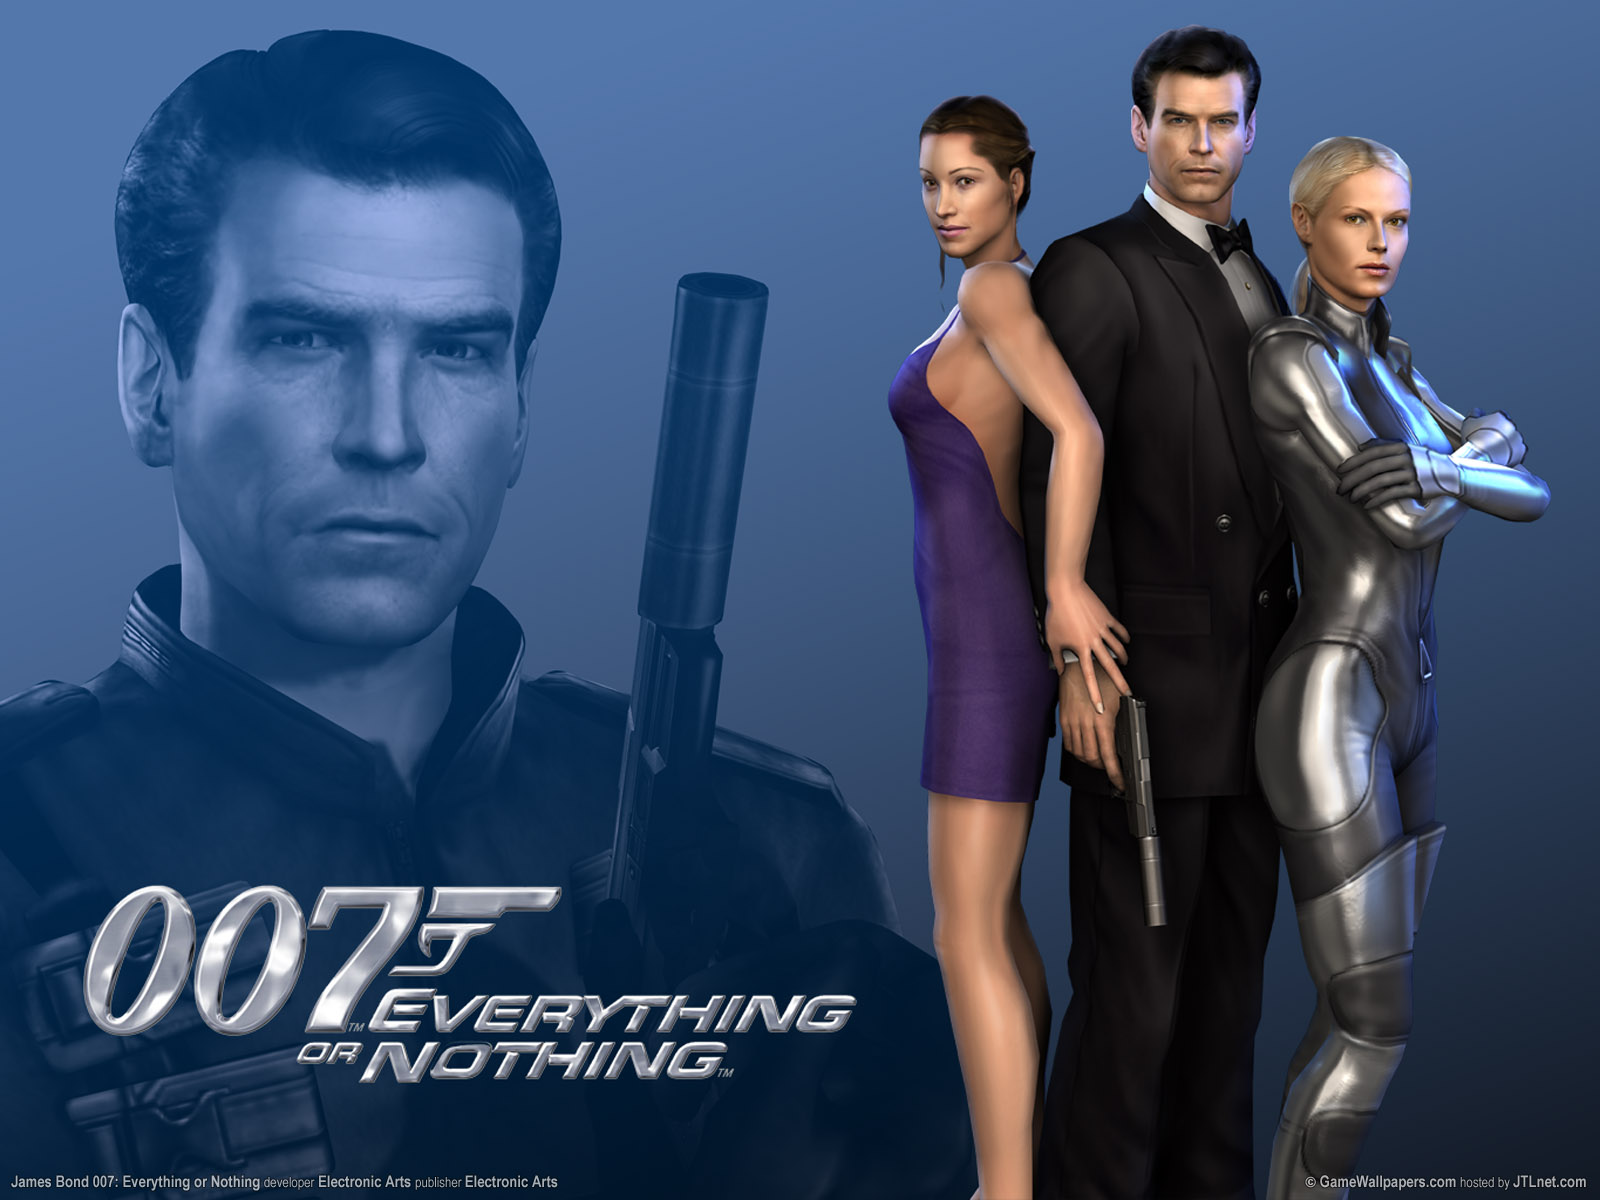 wallpaper_james_bond_007_everything_or_nothing_01_1600.jpg